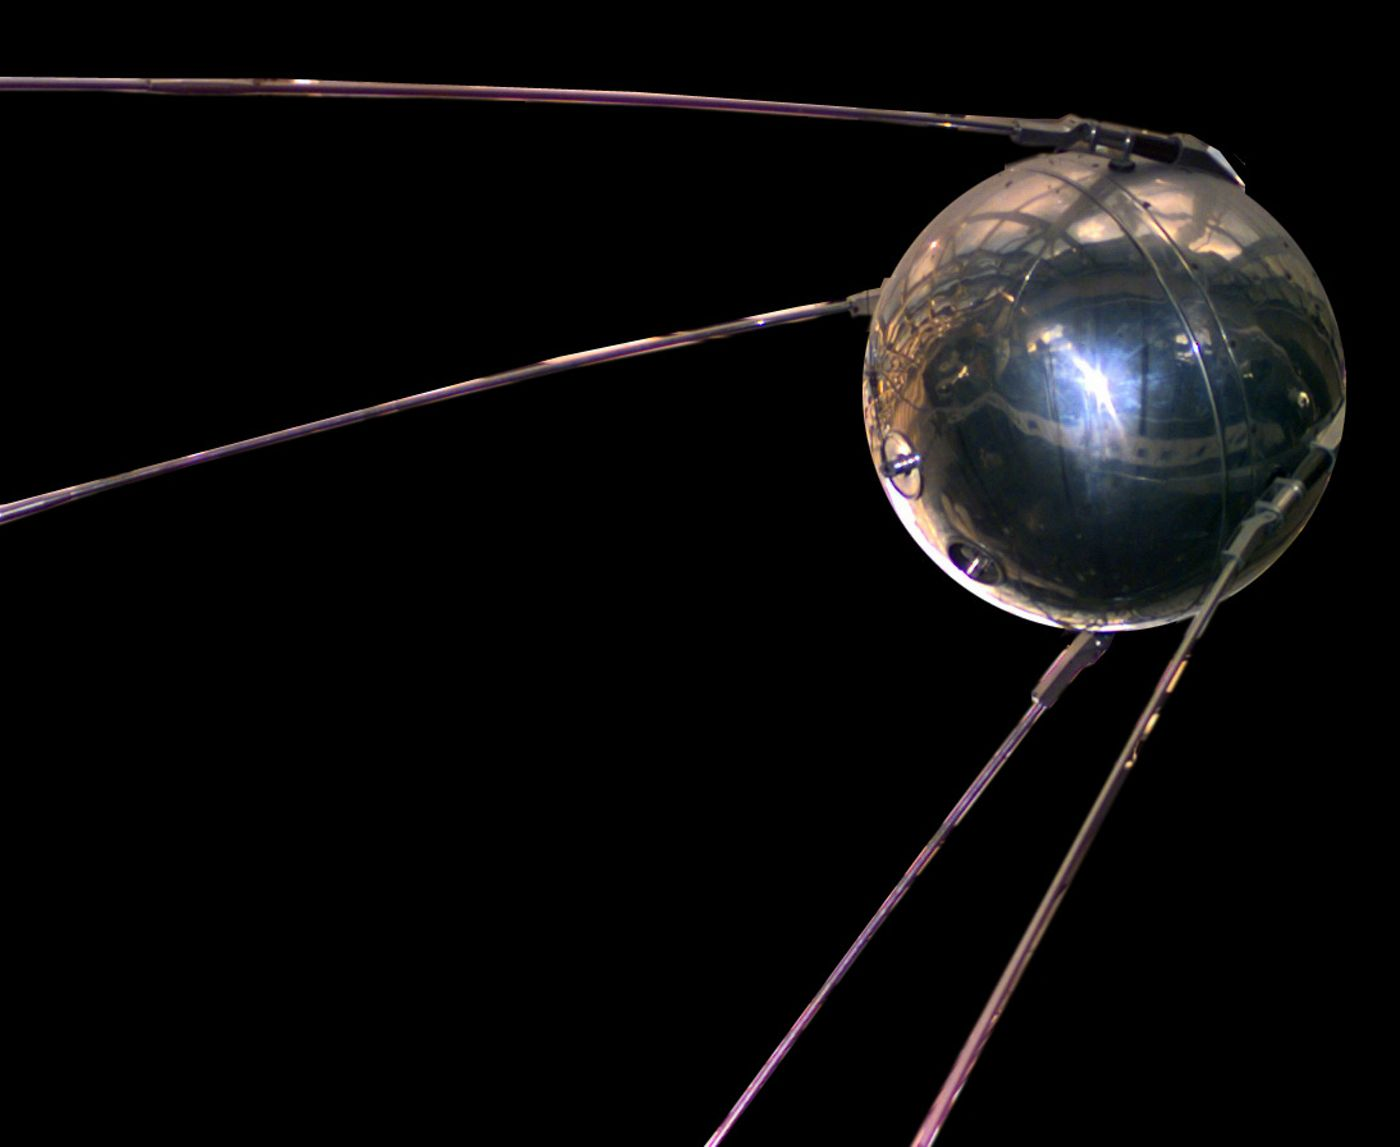 Airbus celebrates 60th anniversary of Sputnik 1 launch